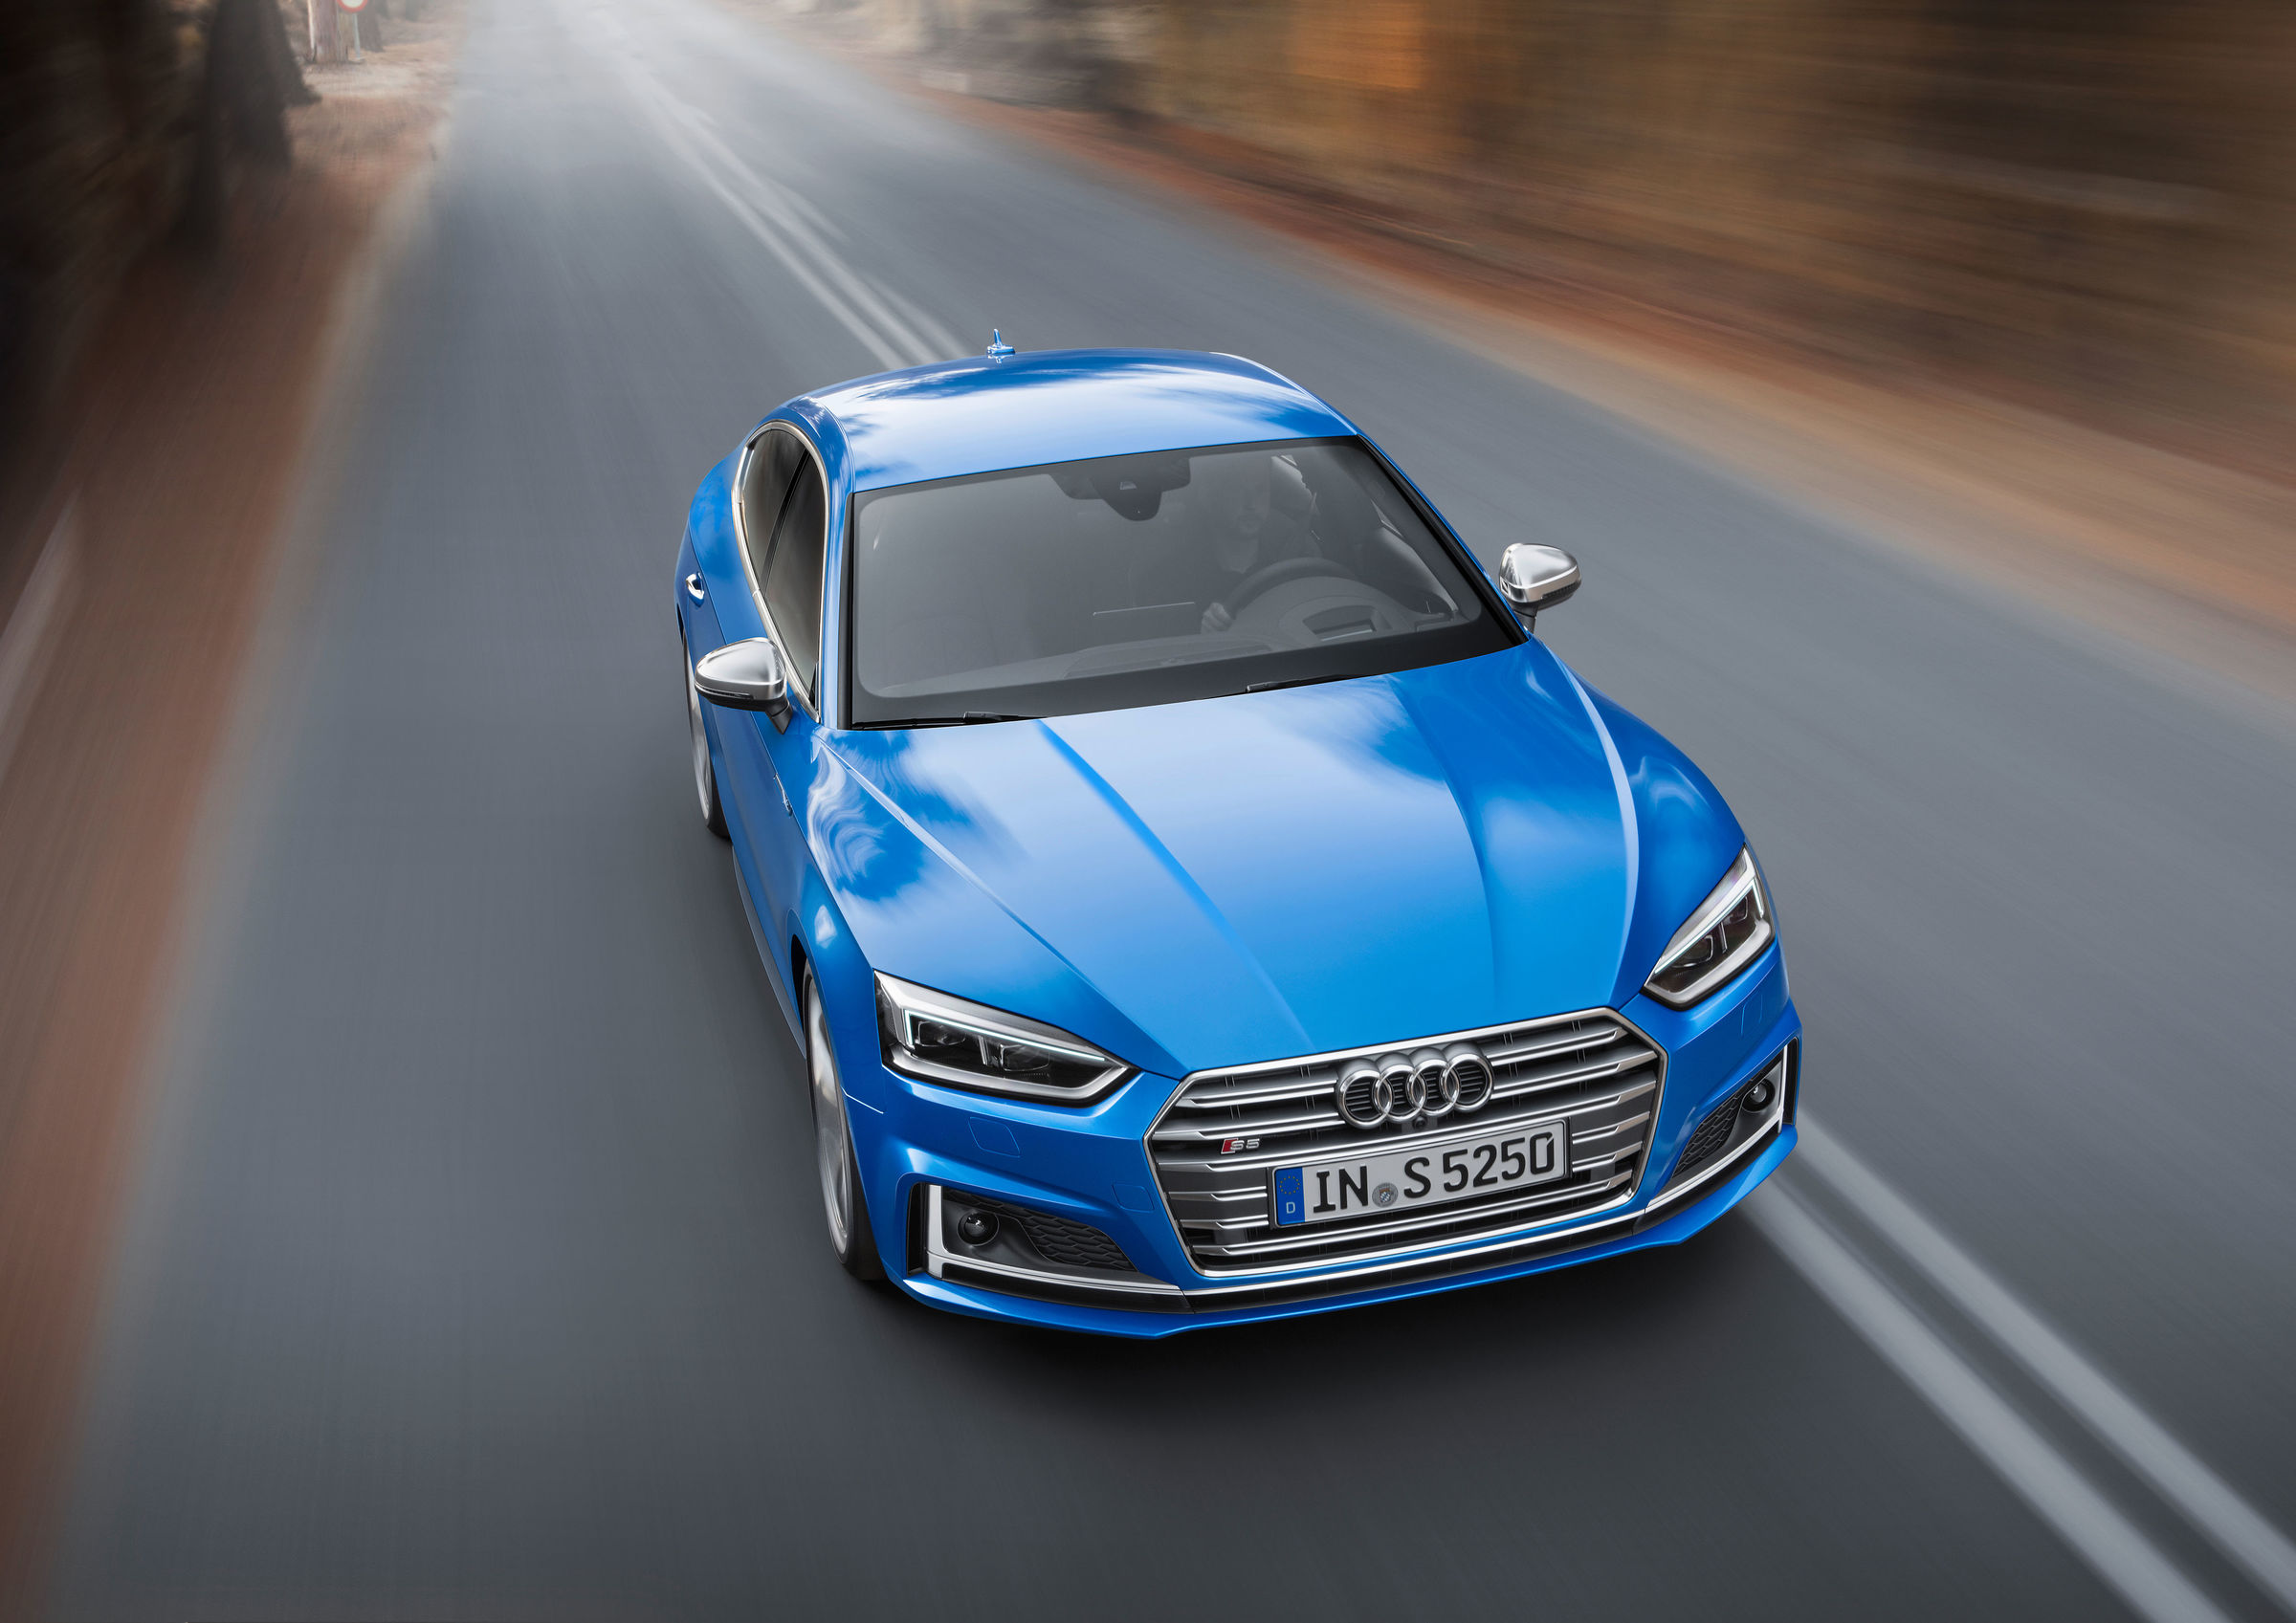 drive plus sale passenger ie the carsireland with sunday world for audi watch